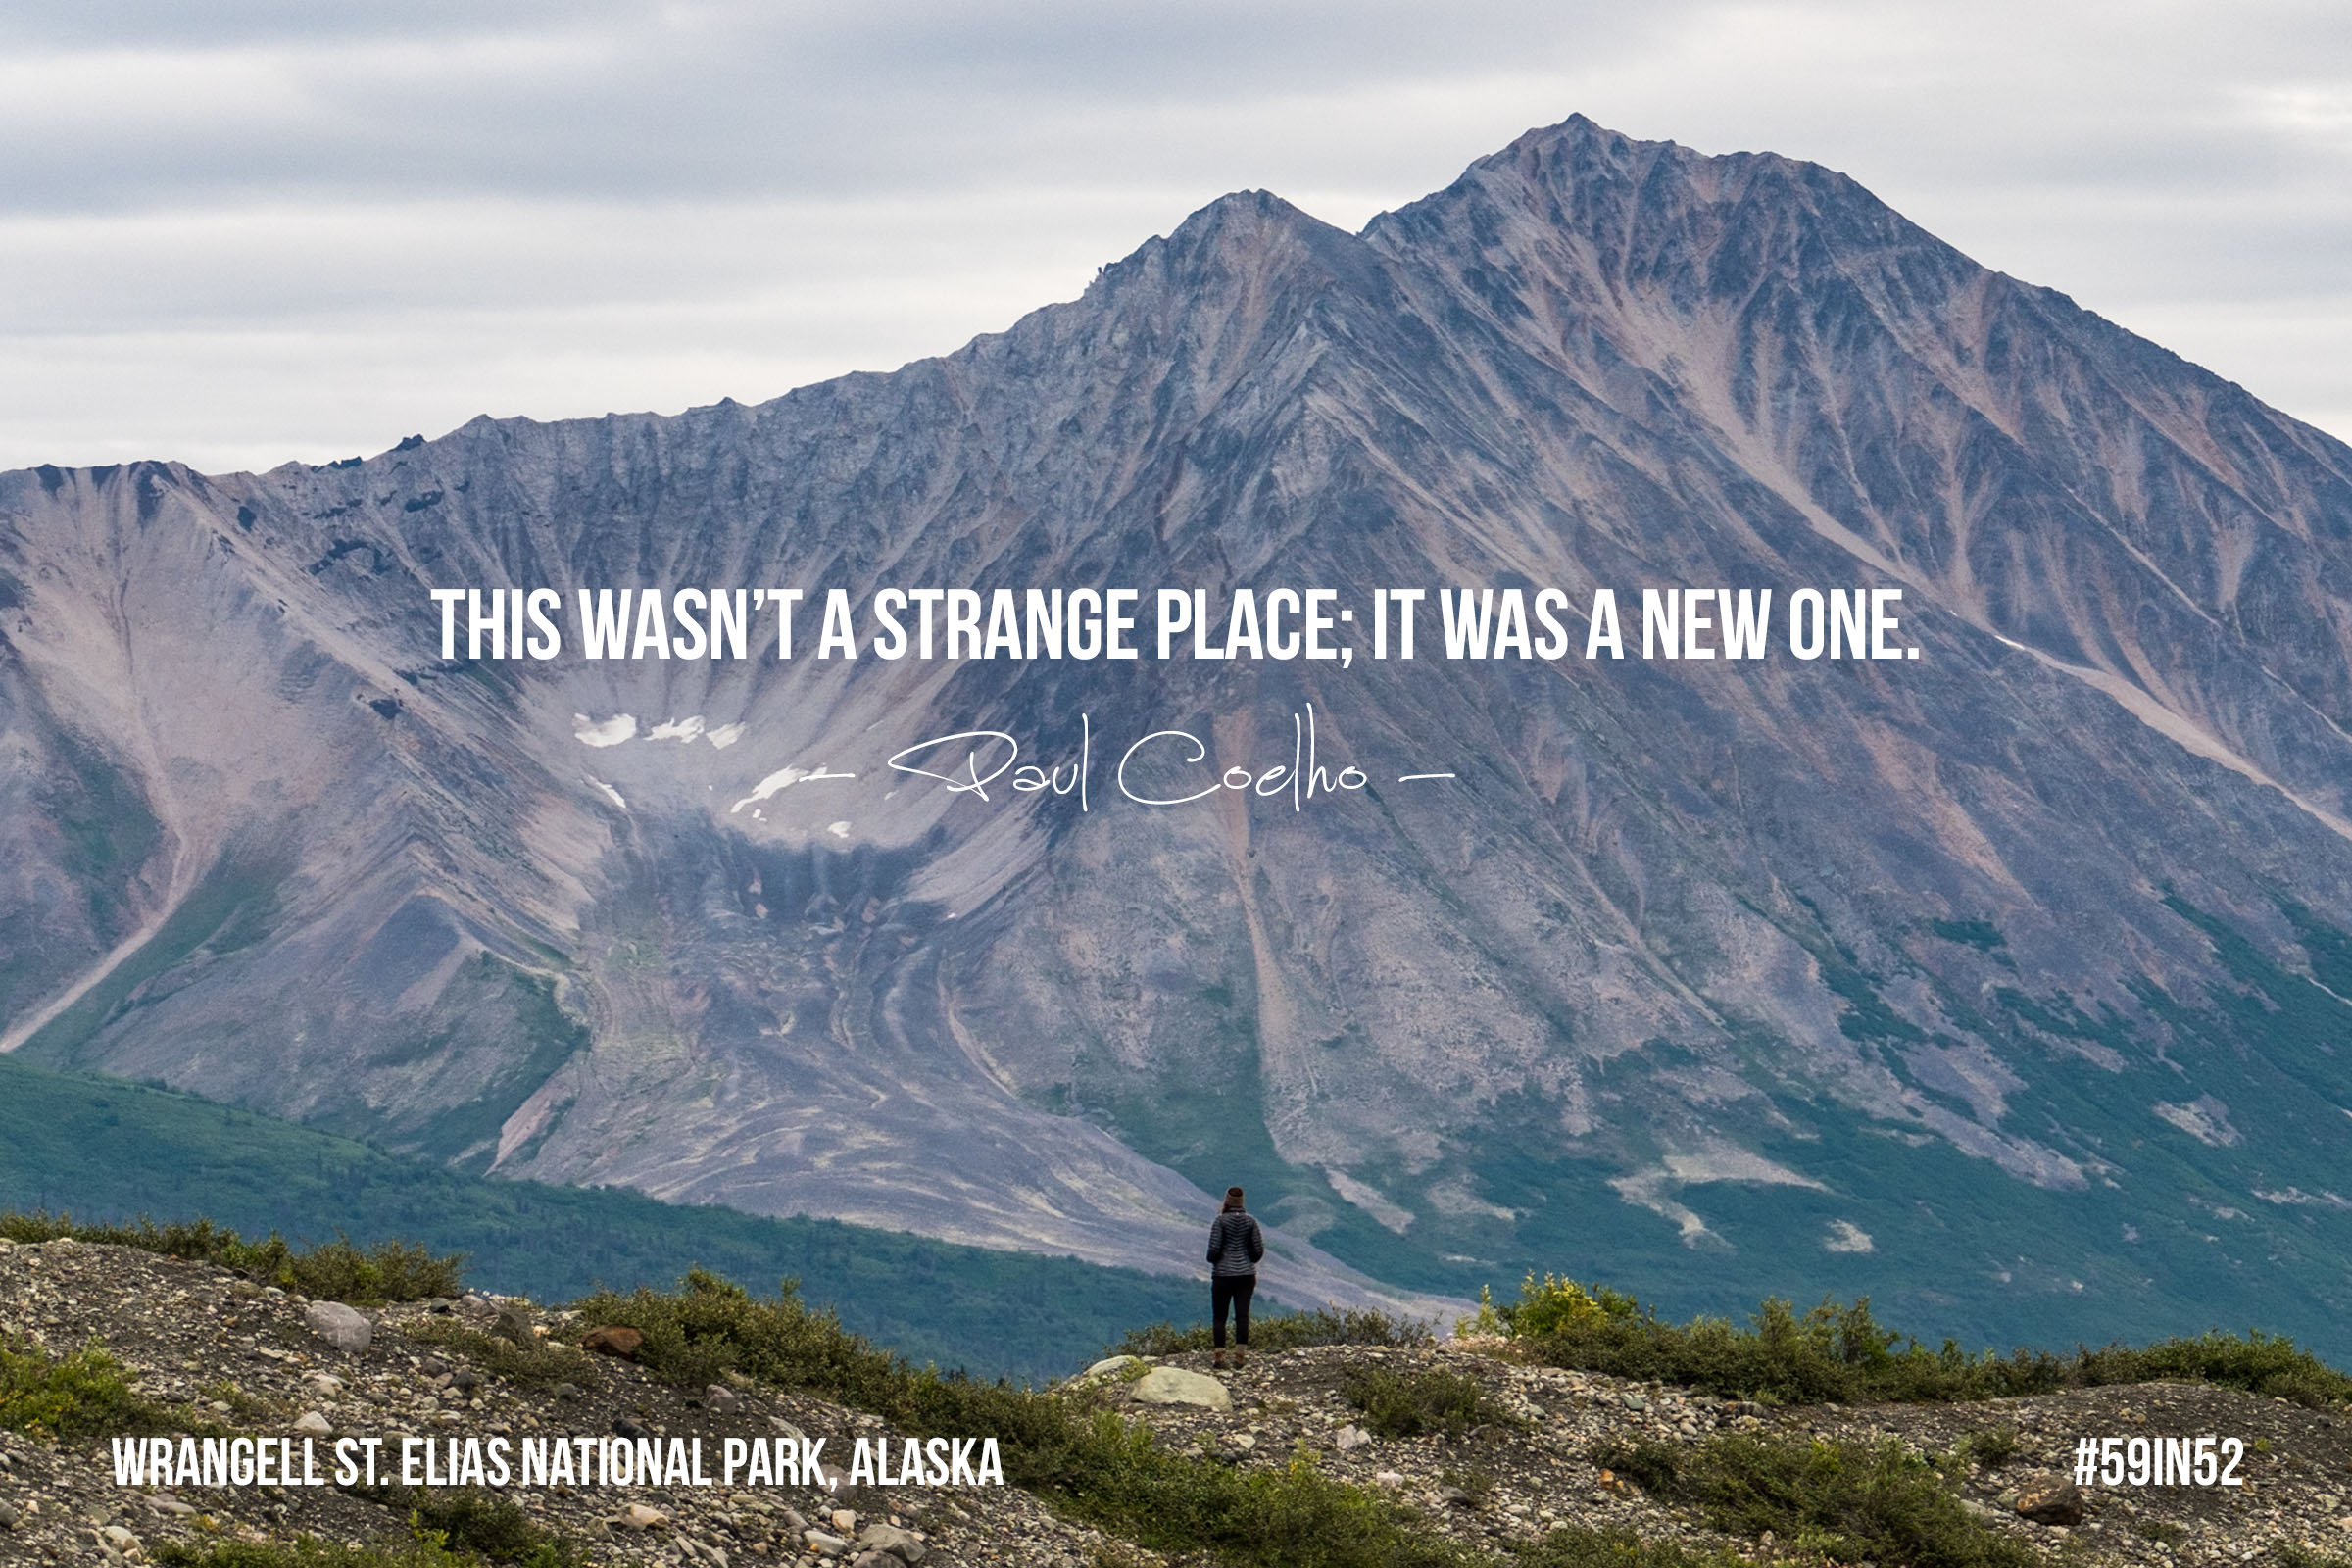 """This wasn't a strange place; it was a new one."" Paul Coelho"